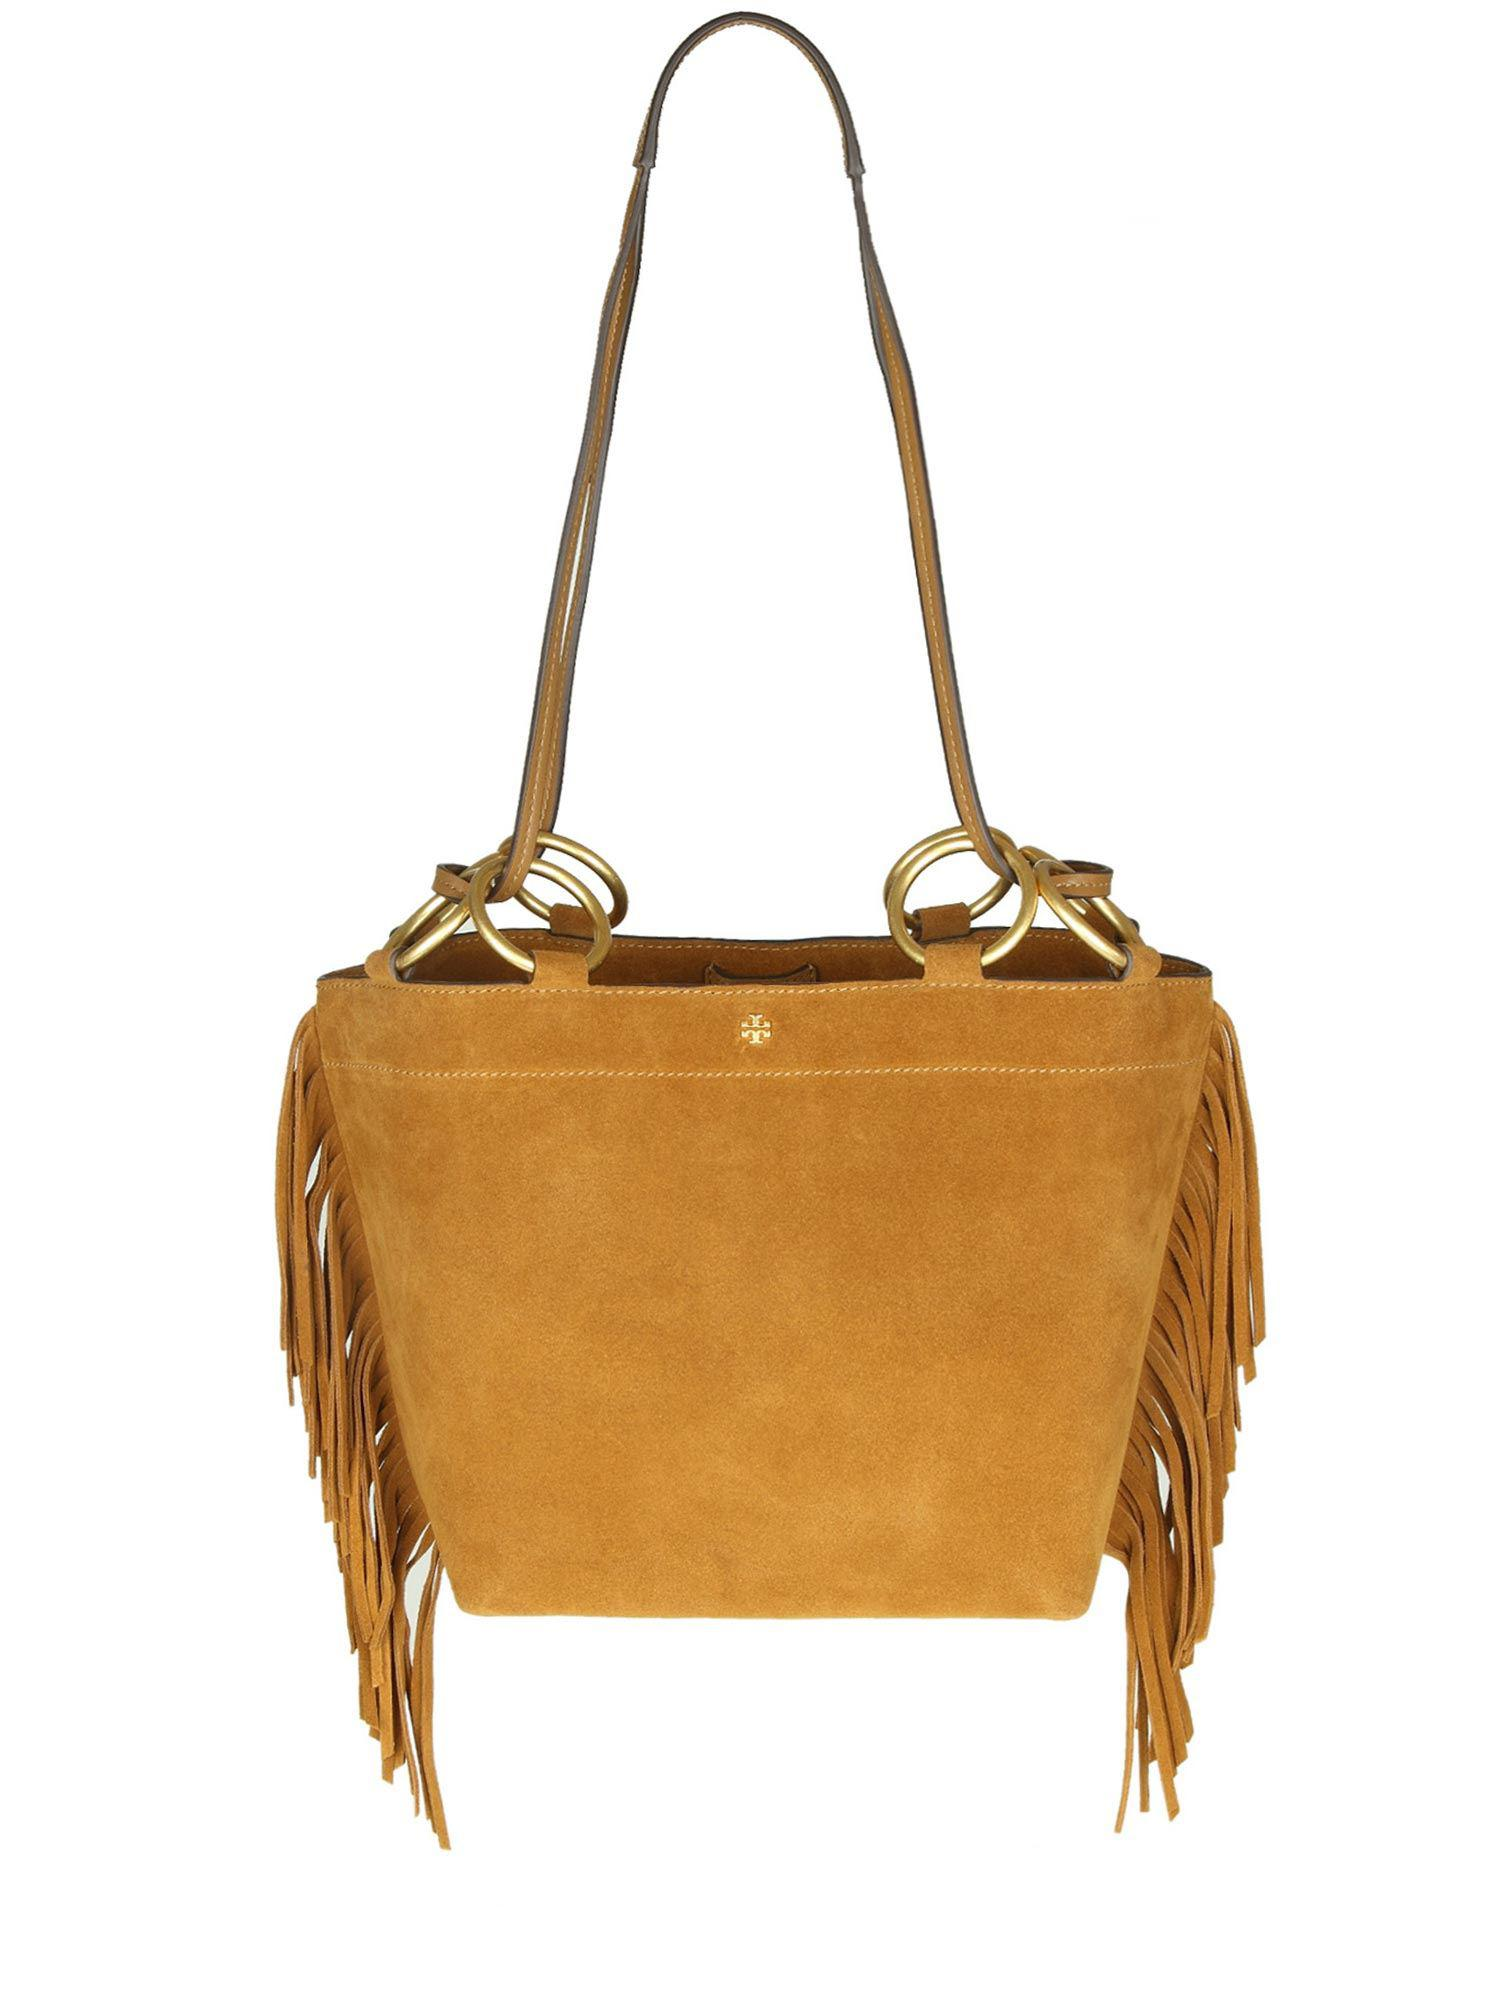 2a3c7a229d Tory Burch Camel Colored Farrah Fringe Small Tote Bag in Natural - Lyst